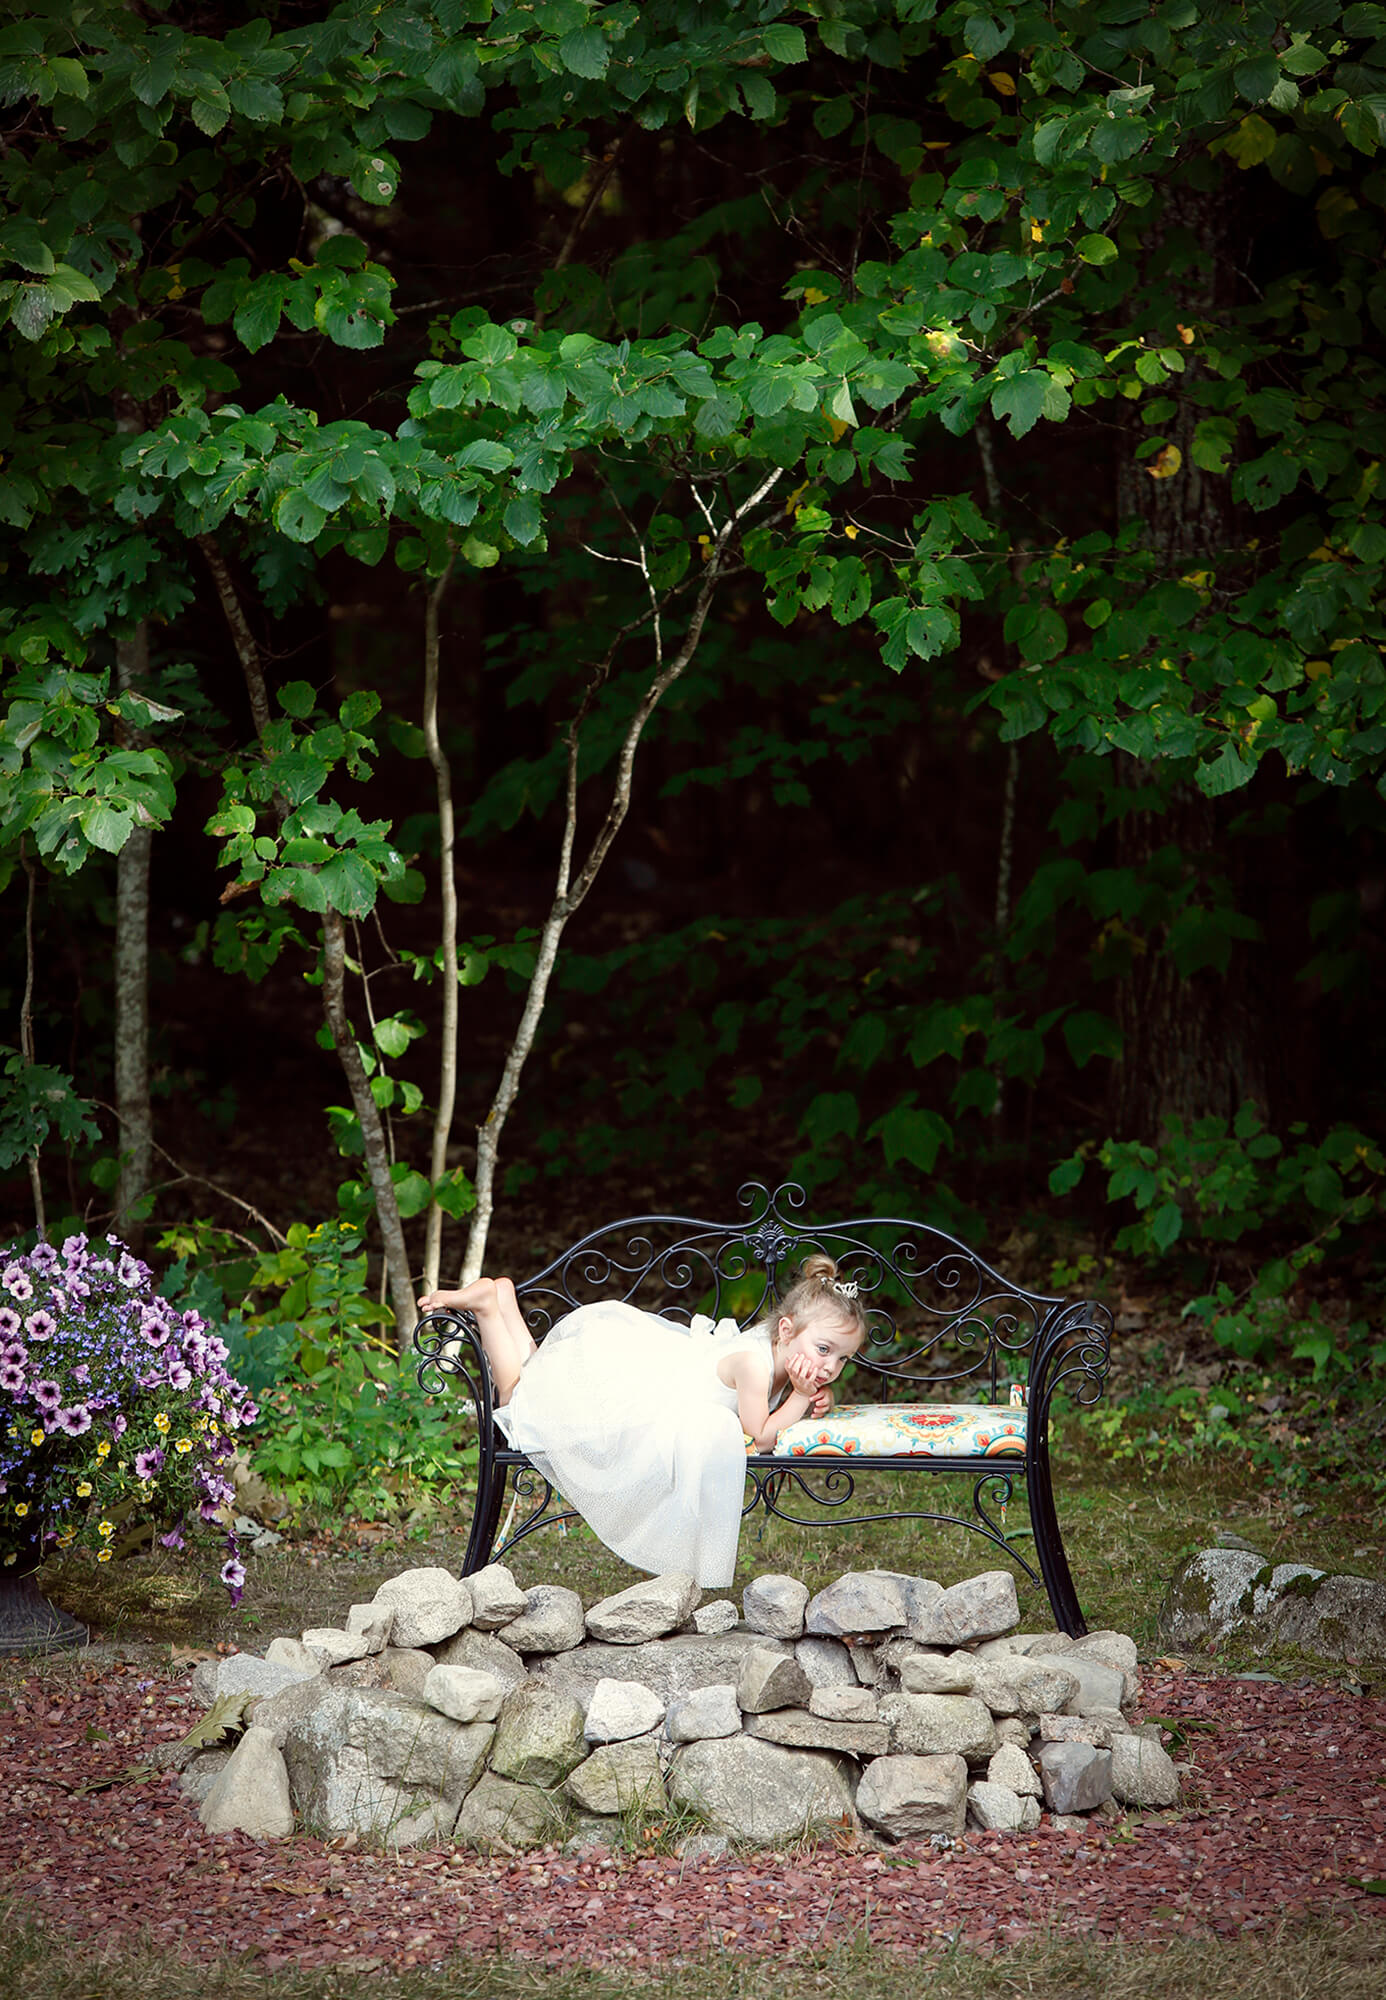 Wedding photography of a bored little girl laying on a bench during the reception